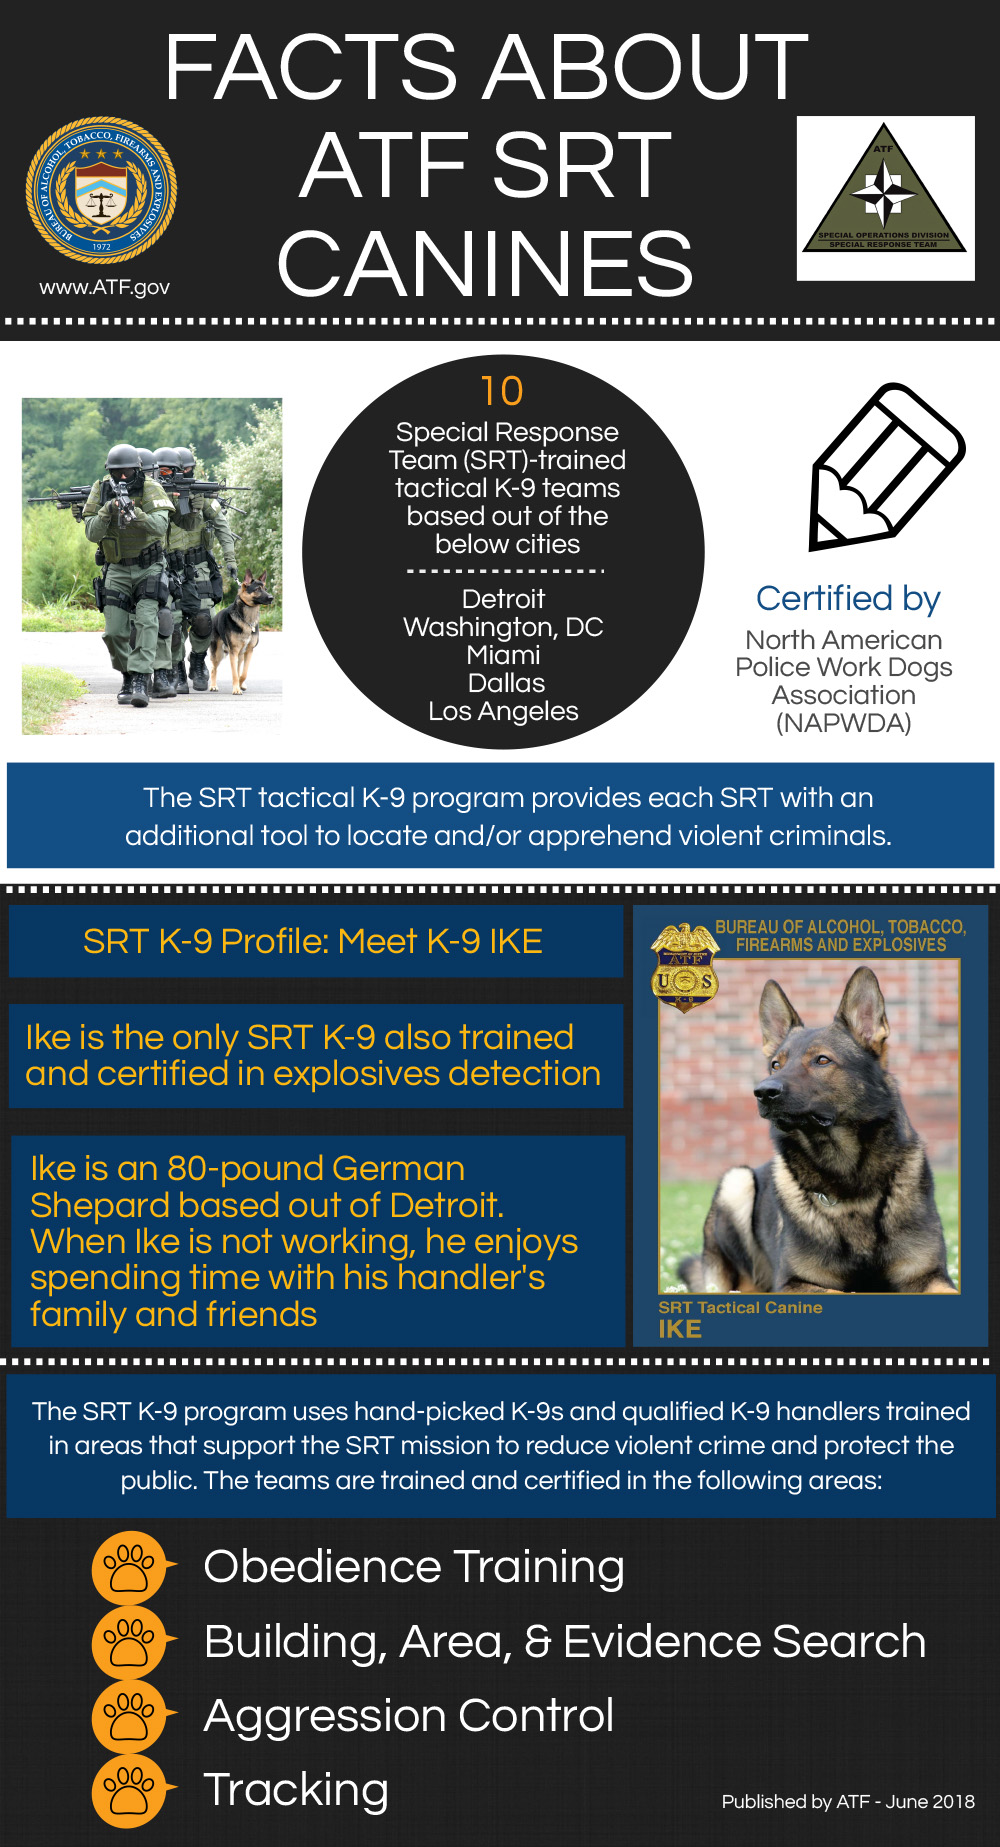 Facts About ATF Special Response Team (SRT) Canines